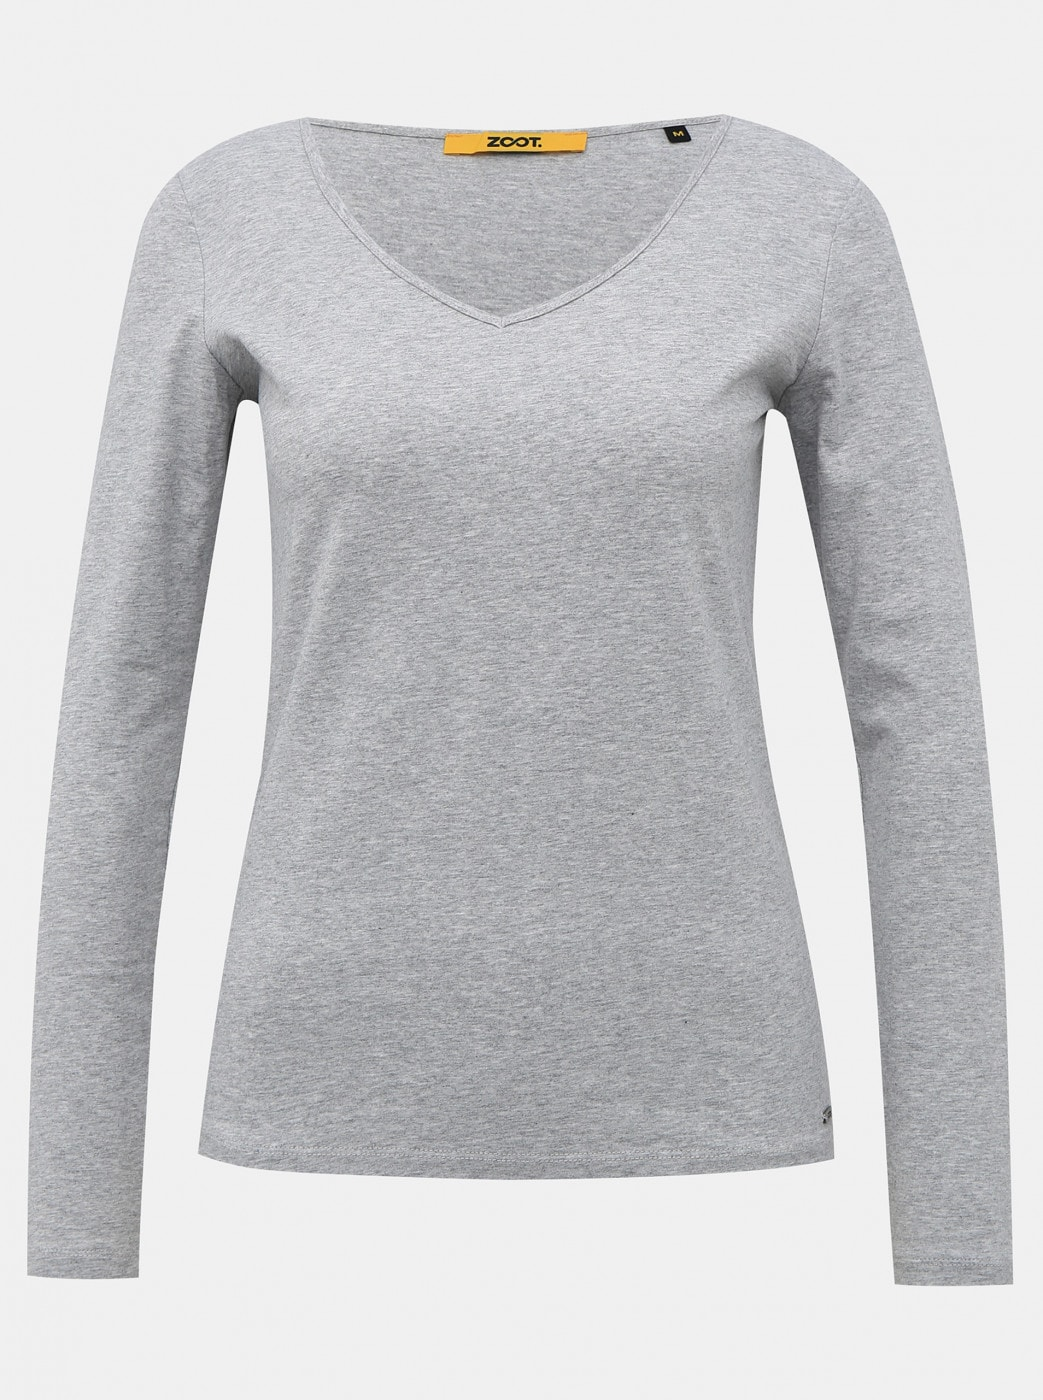 Light Grey Women's Basic T-Shirt ZOOT Baseline Tamara